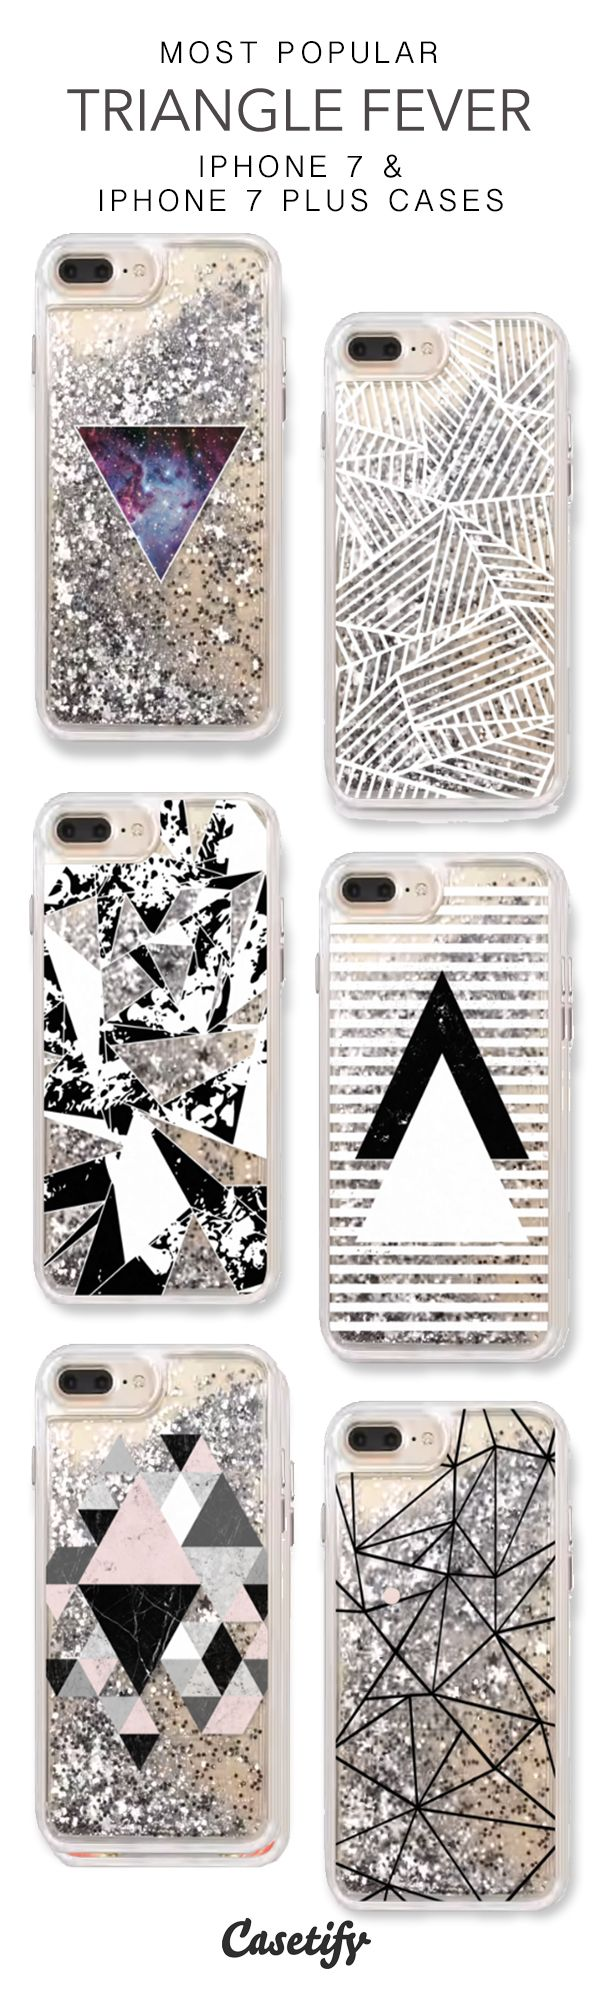 Most Popular Triangle Fever iPhone 7 Cases & iPhone 7 Plus Cases. More geometric iPhone case here > https://www.casetify.com/en_US/collections/iphone-7-glitter-cases#/?vc=f1MpDB1LOv